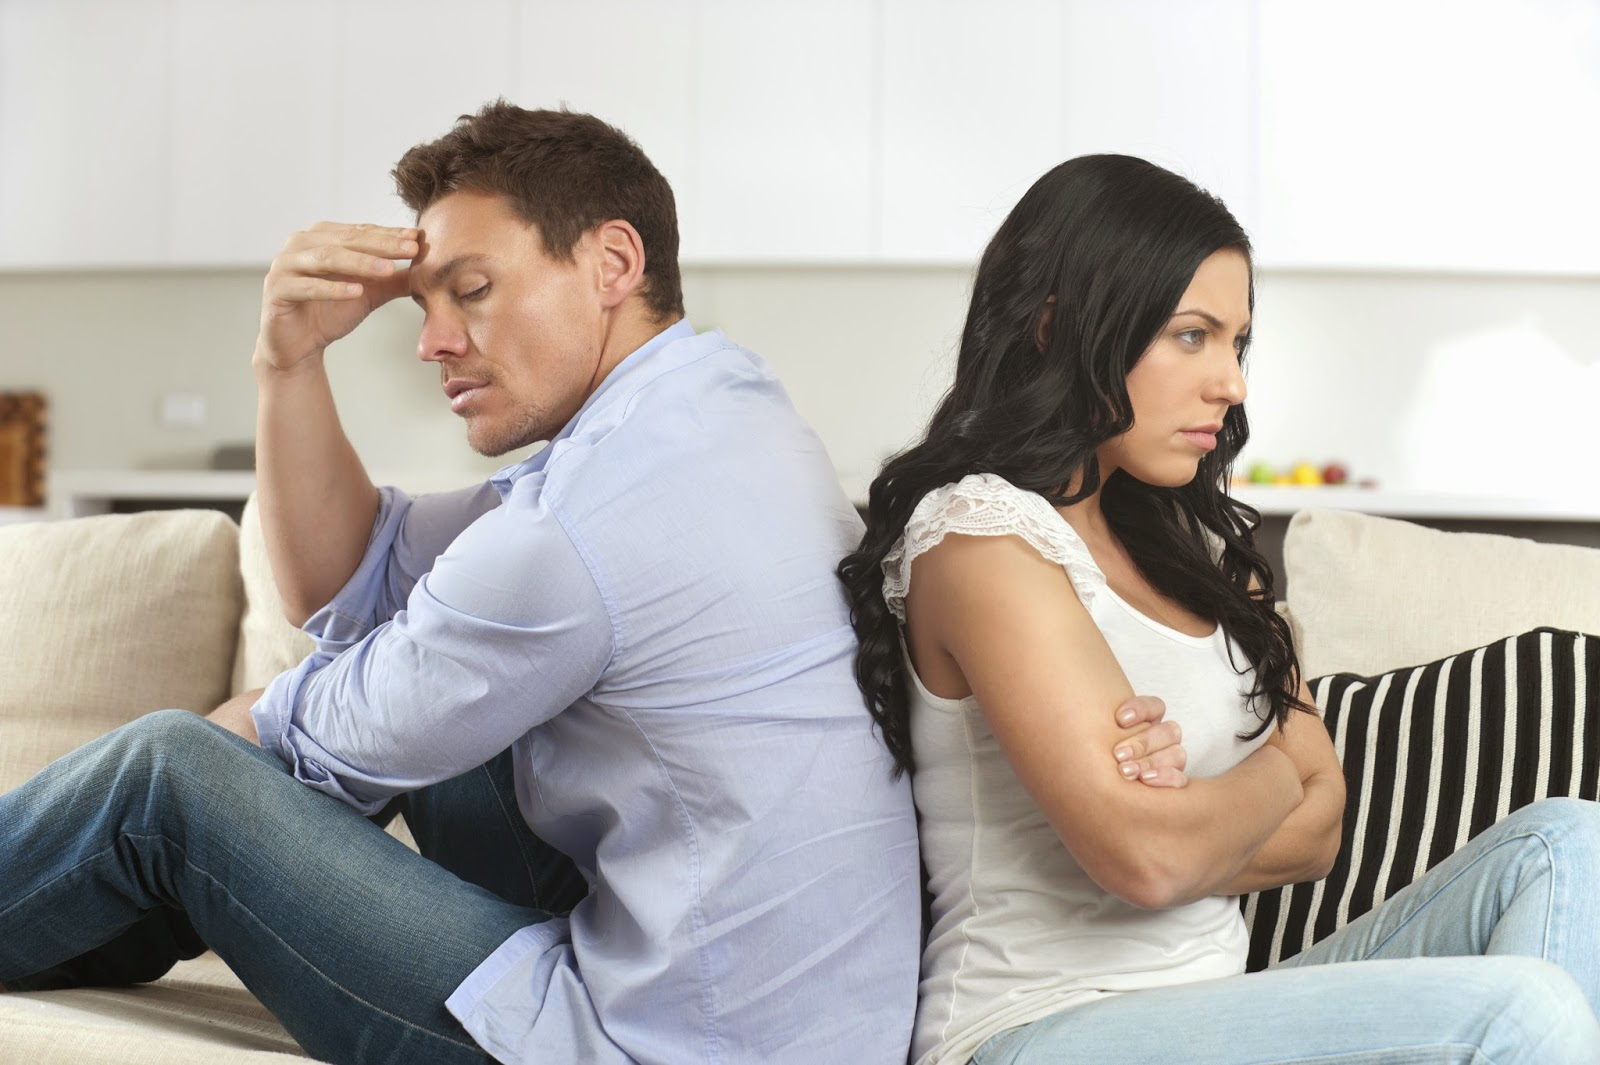 catholic singles in petroleum Catholic singles network - if you are single and looking for a relationship, this site is your chance to find boyfriend, girlfriend or get married catholic singles network it may seem strange, but when it comes to looking for love in online dating world, you should keep in mind that it is not only you.